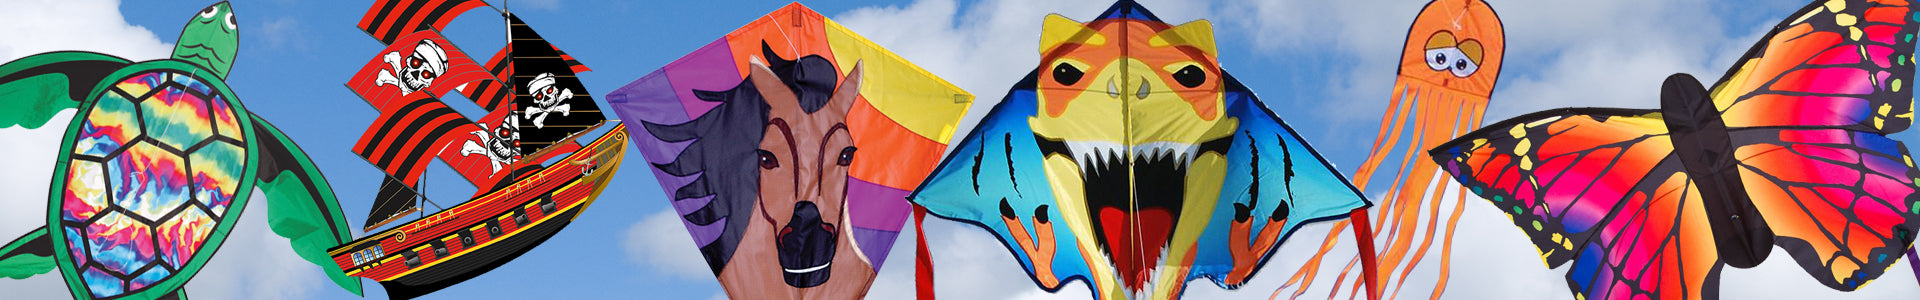 Kites For Kids